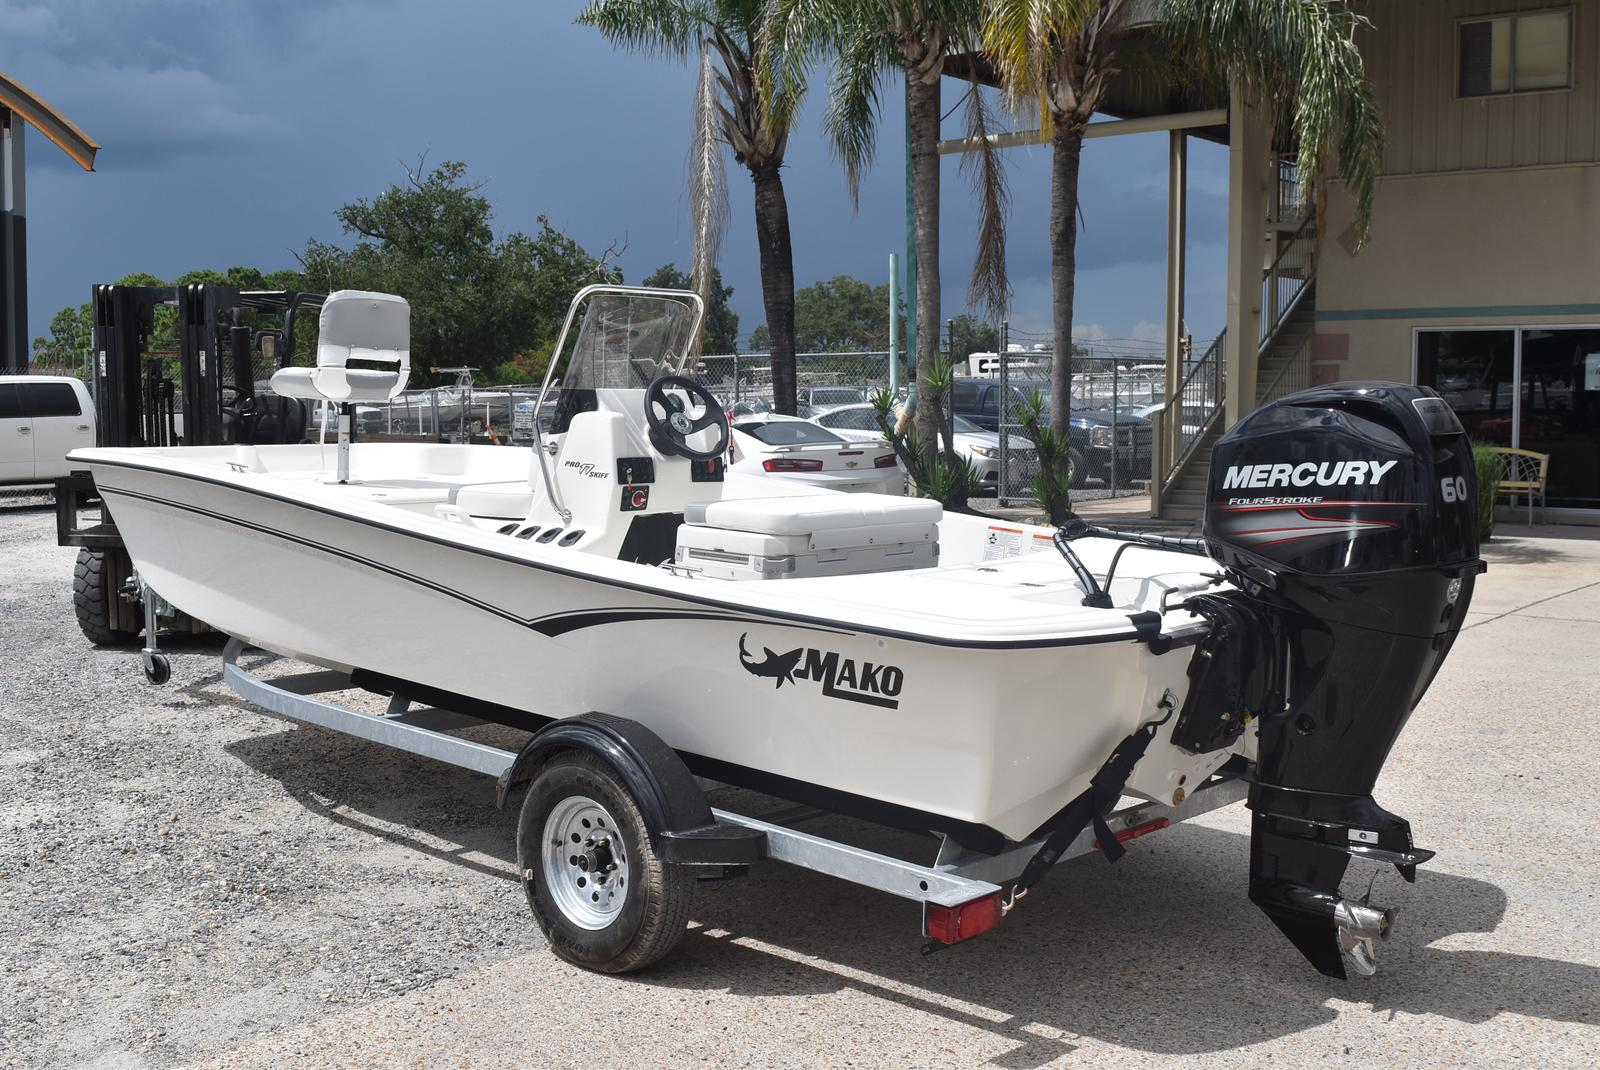 2020 Mako boat for sale, model of the boat is Pro Skiff 17, 75 ELPT & Image # 214 of 702